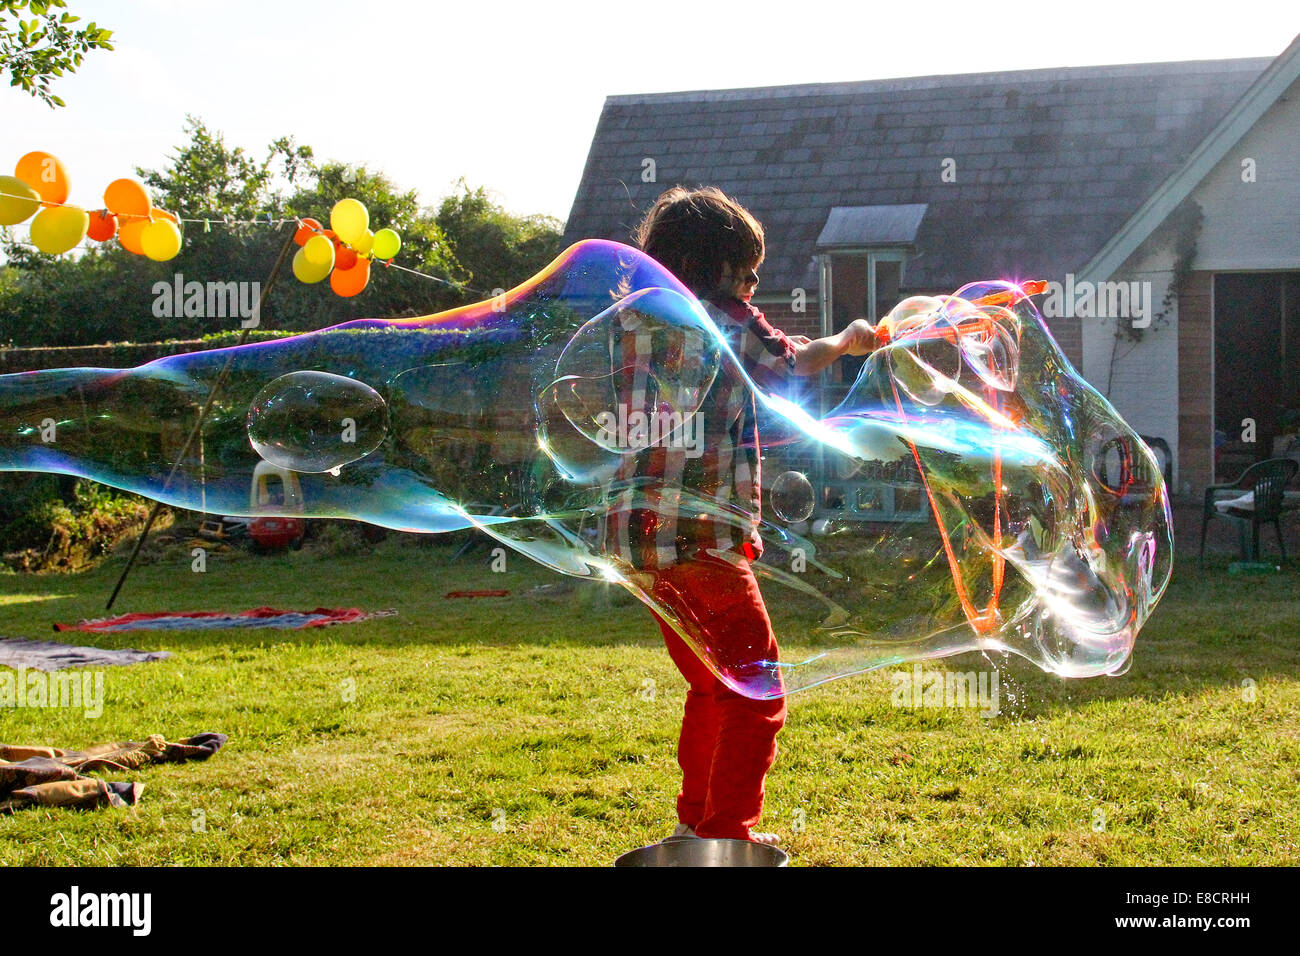 A young child making bubbles in a garden on a summers day During a garden party. - Stock Image